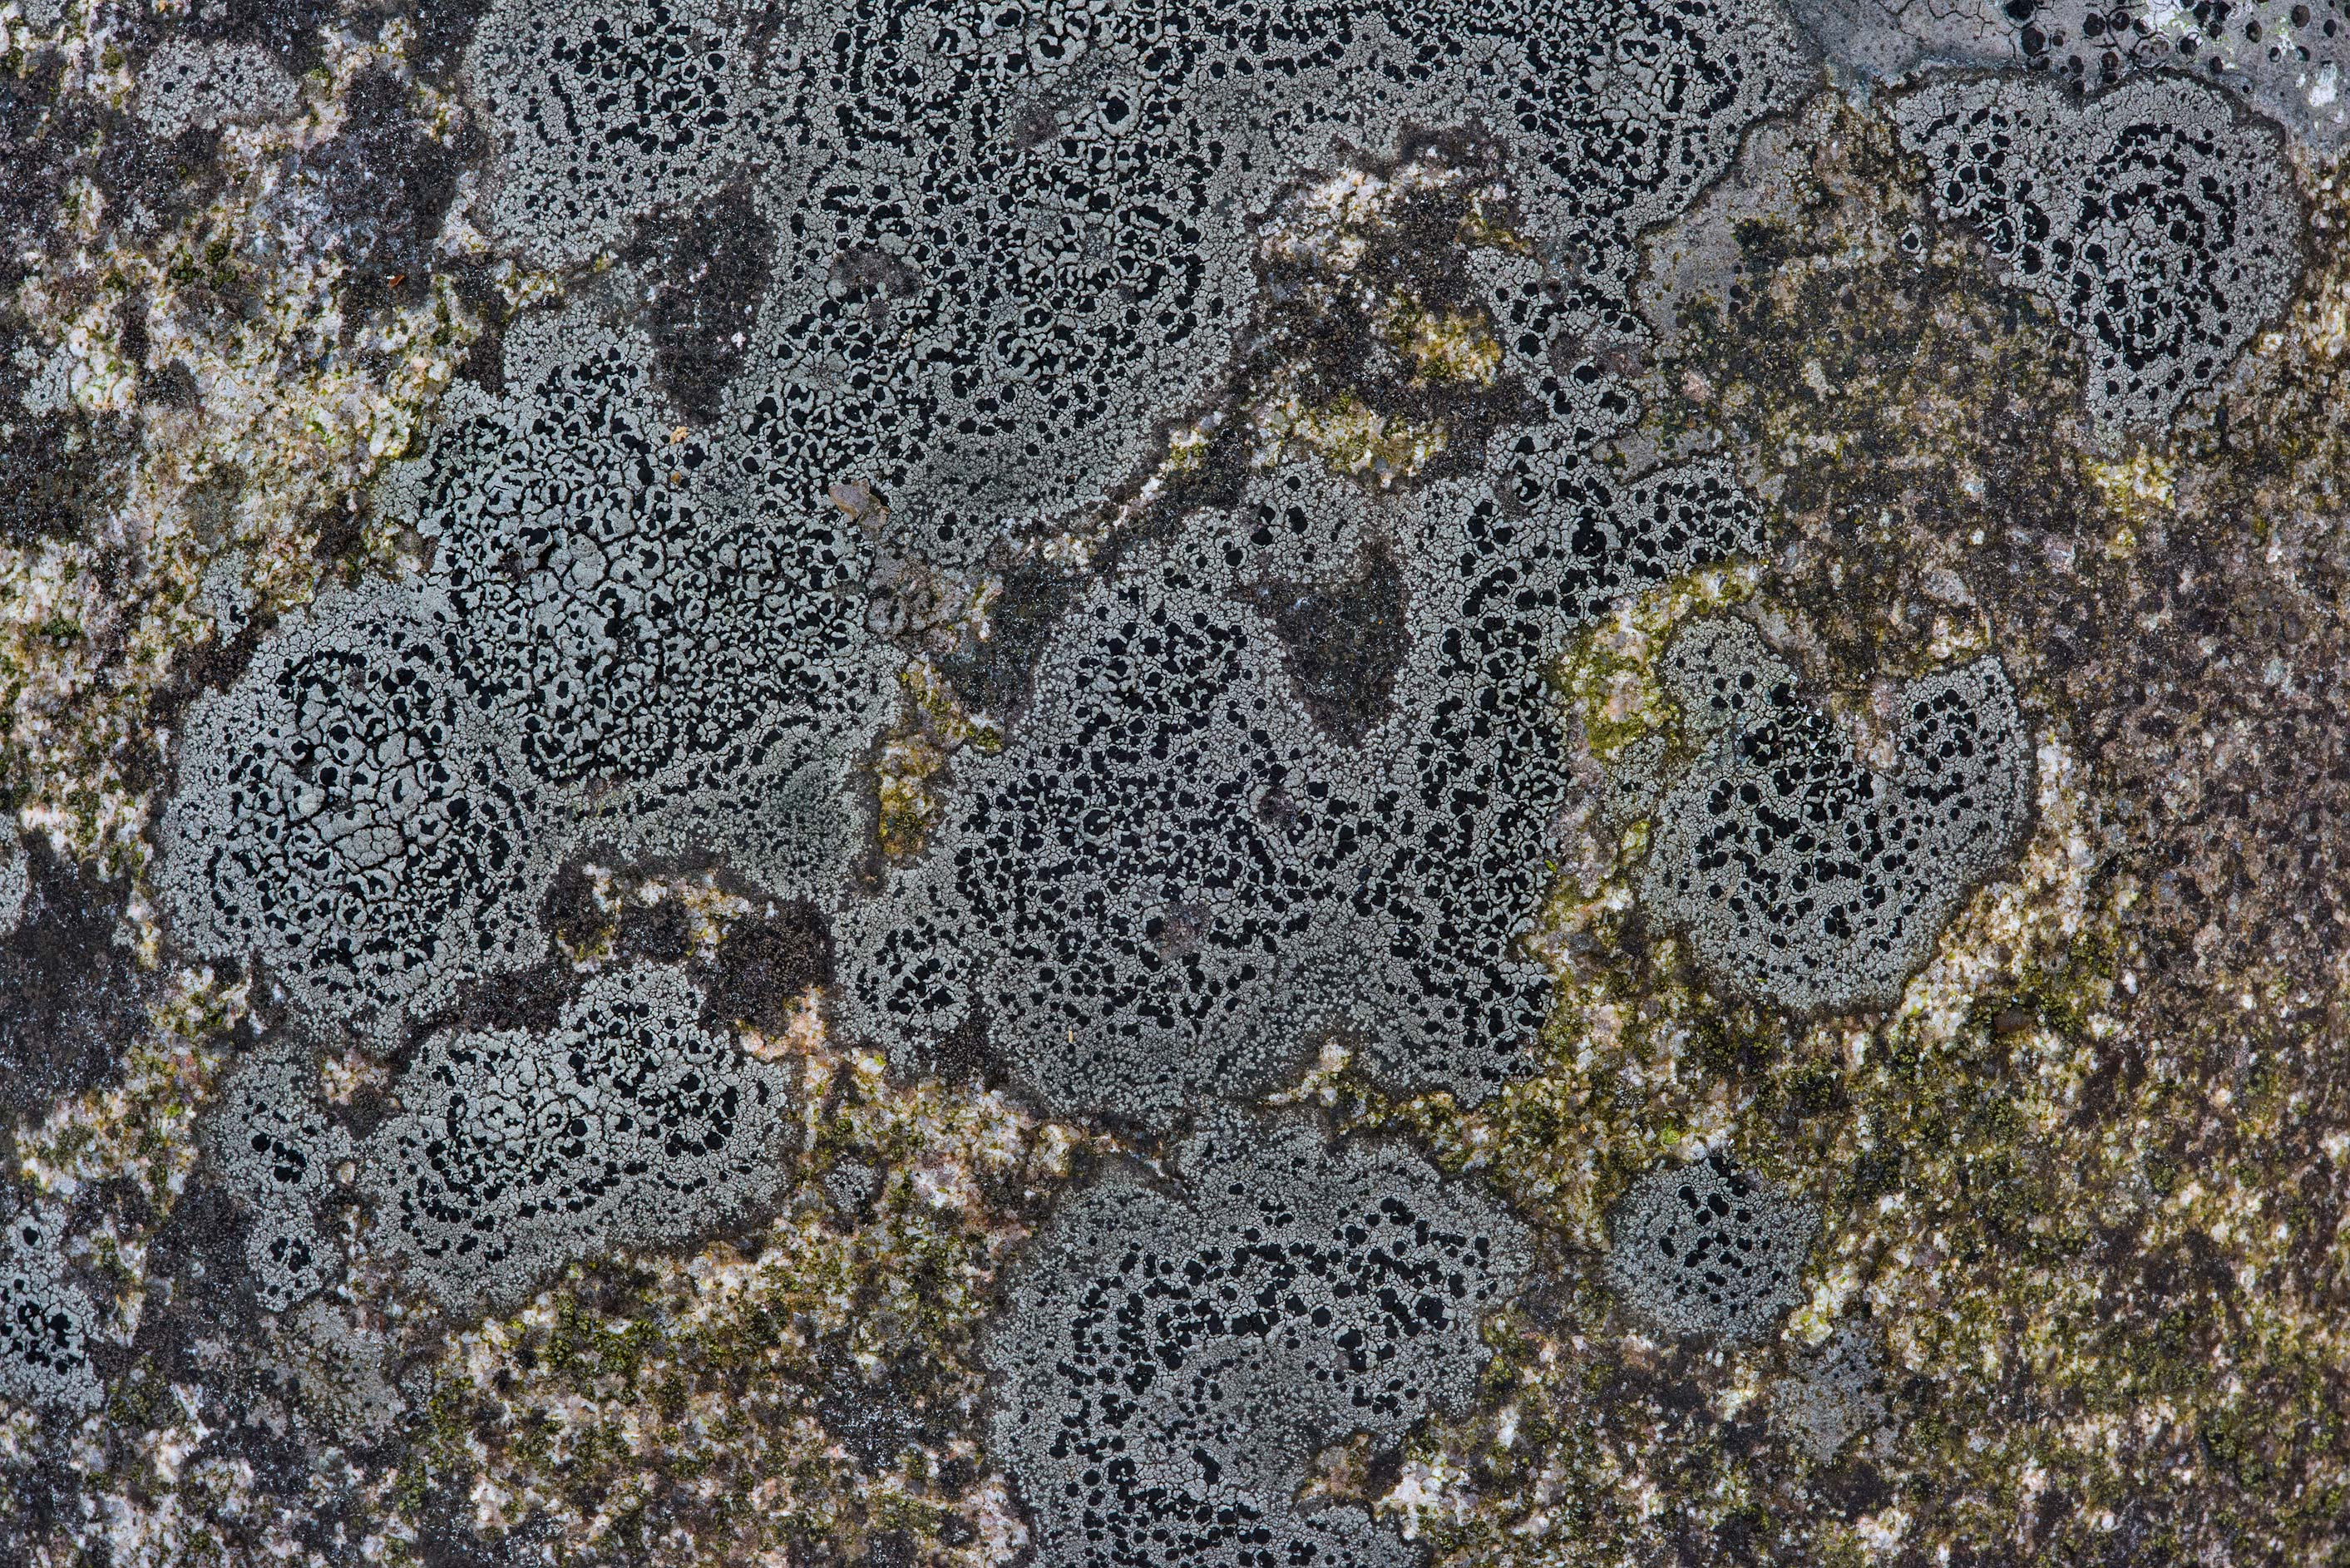 Crustose lichen on the surface of a rock in...miles north from St.Petersburg. Russia